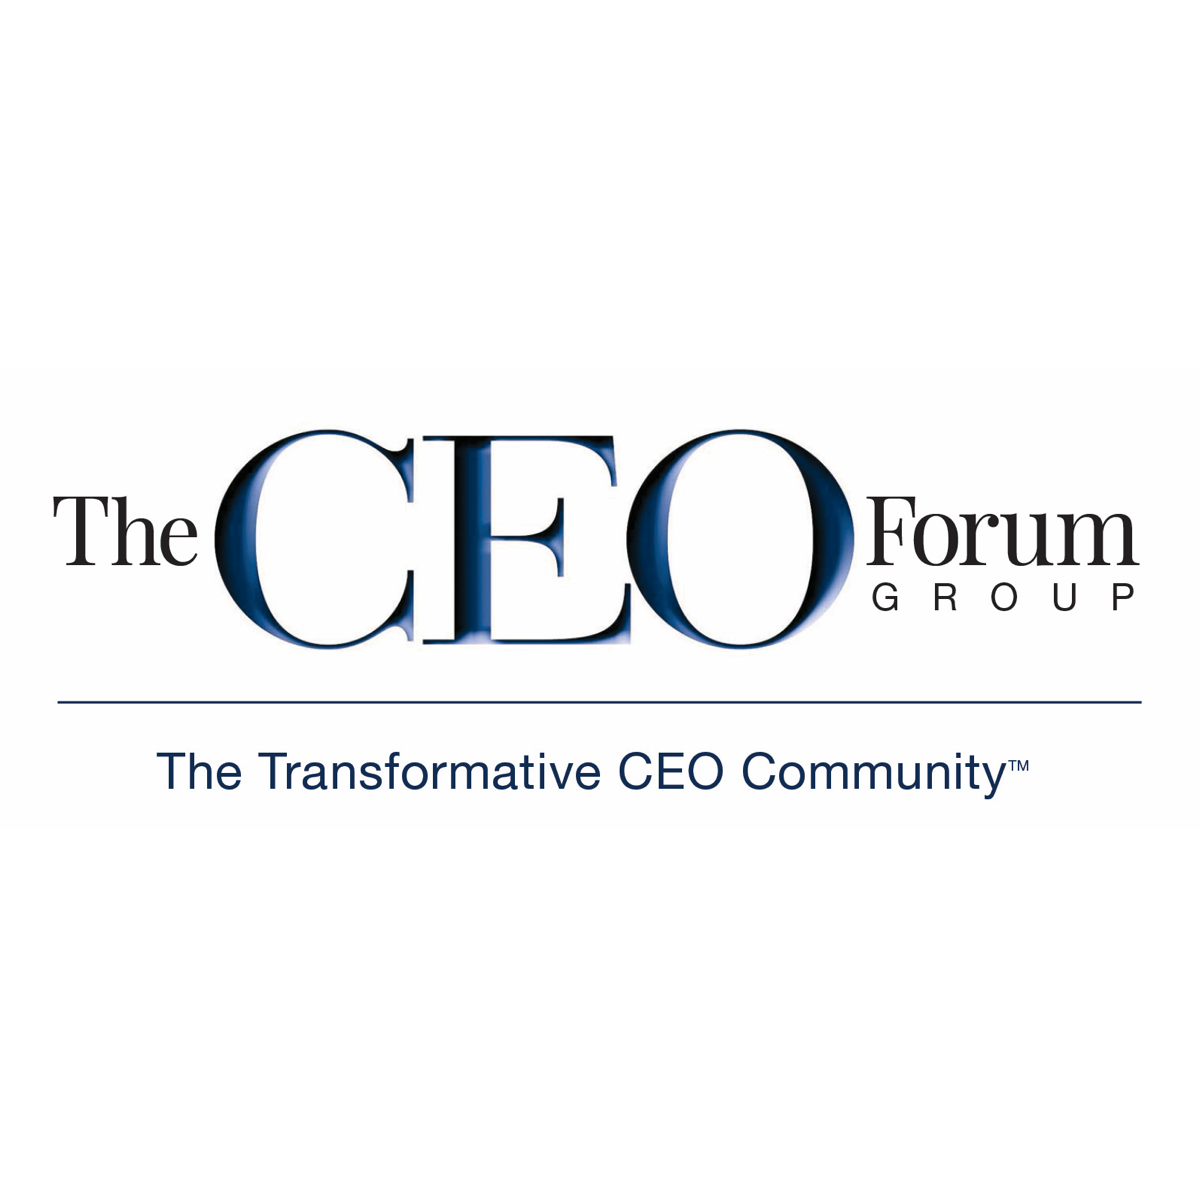 ImagineBC on The CEO Forum